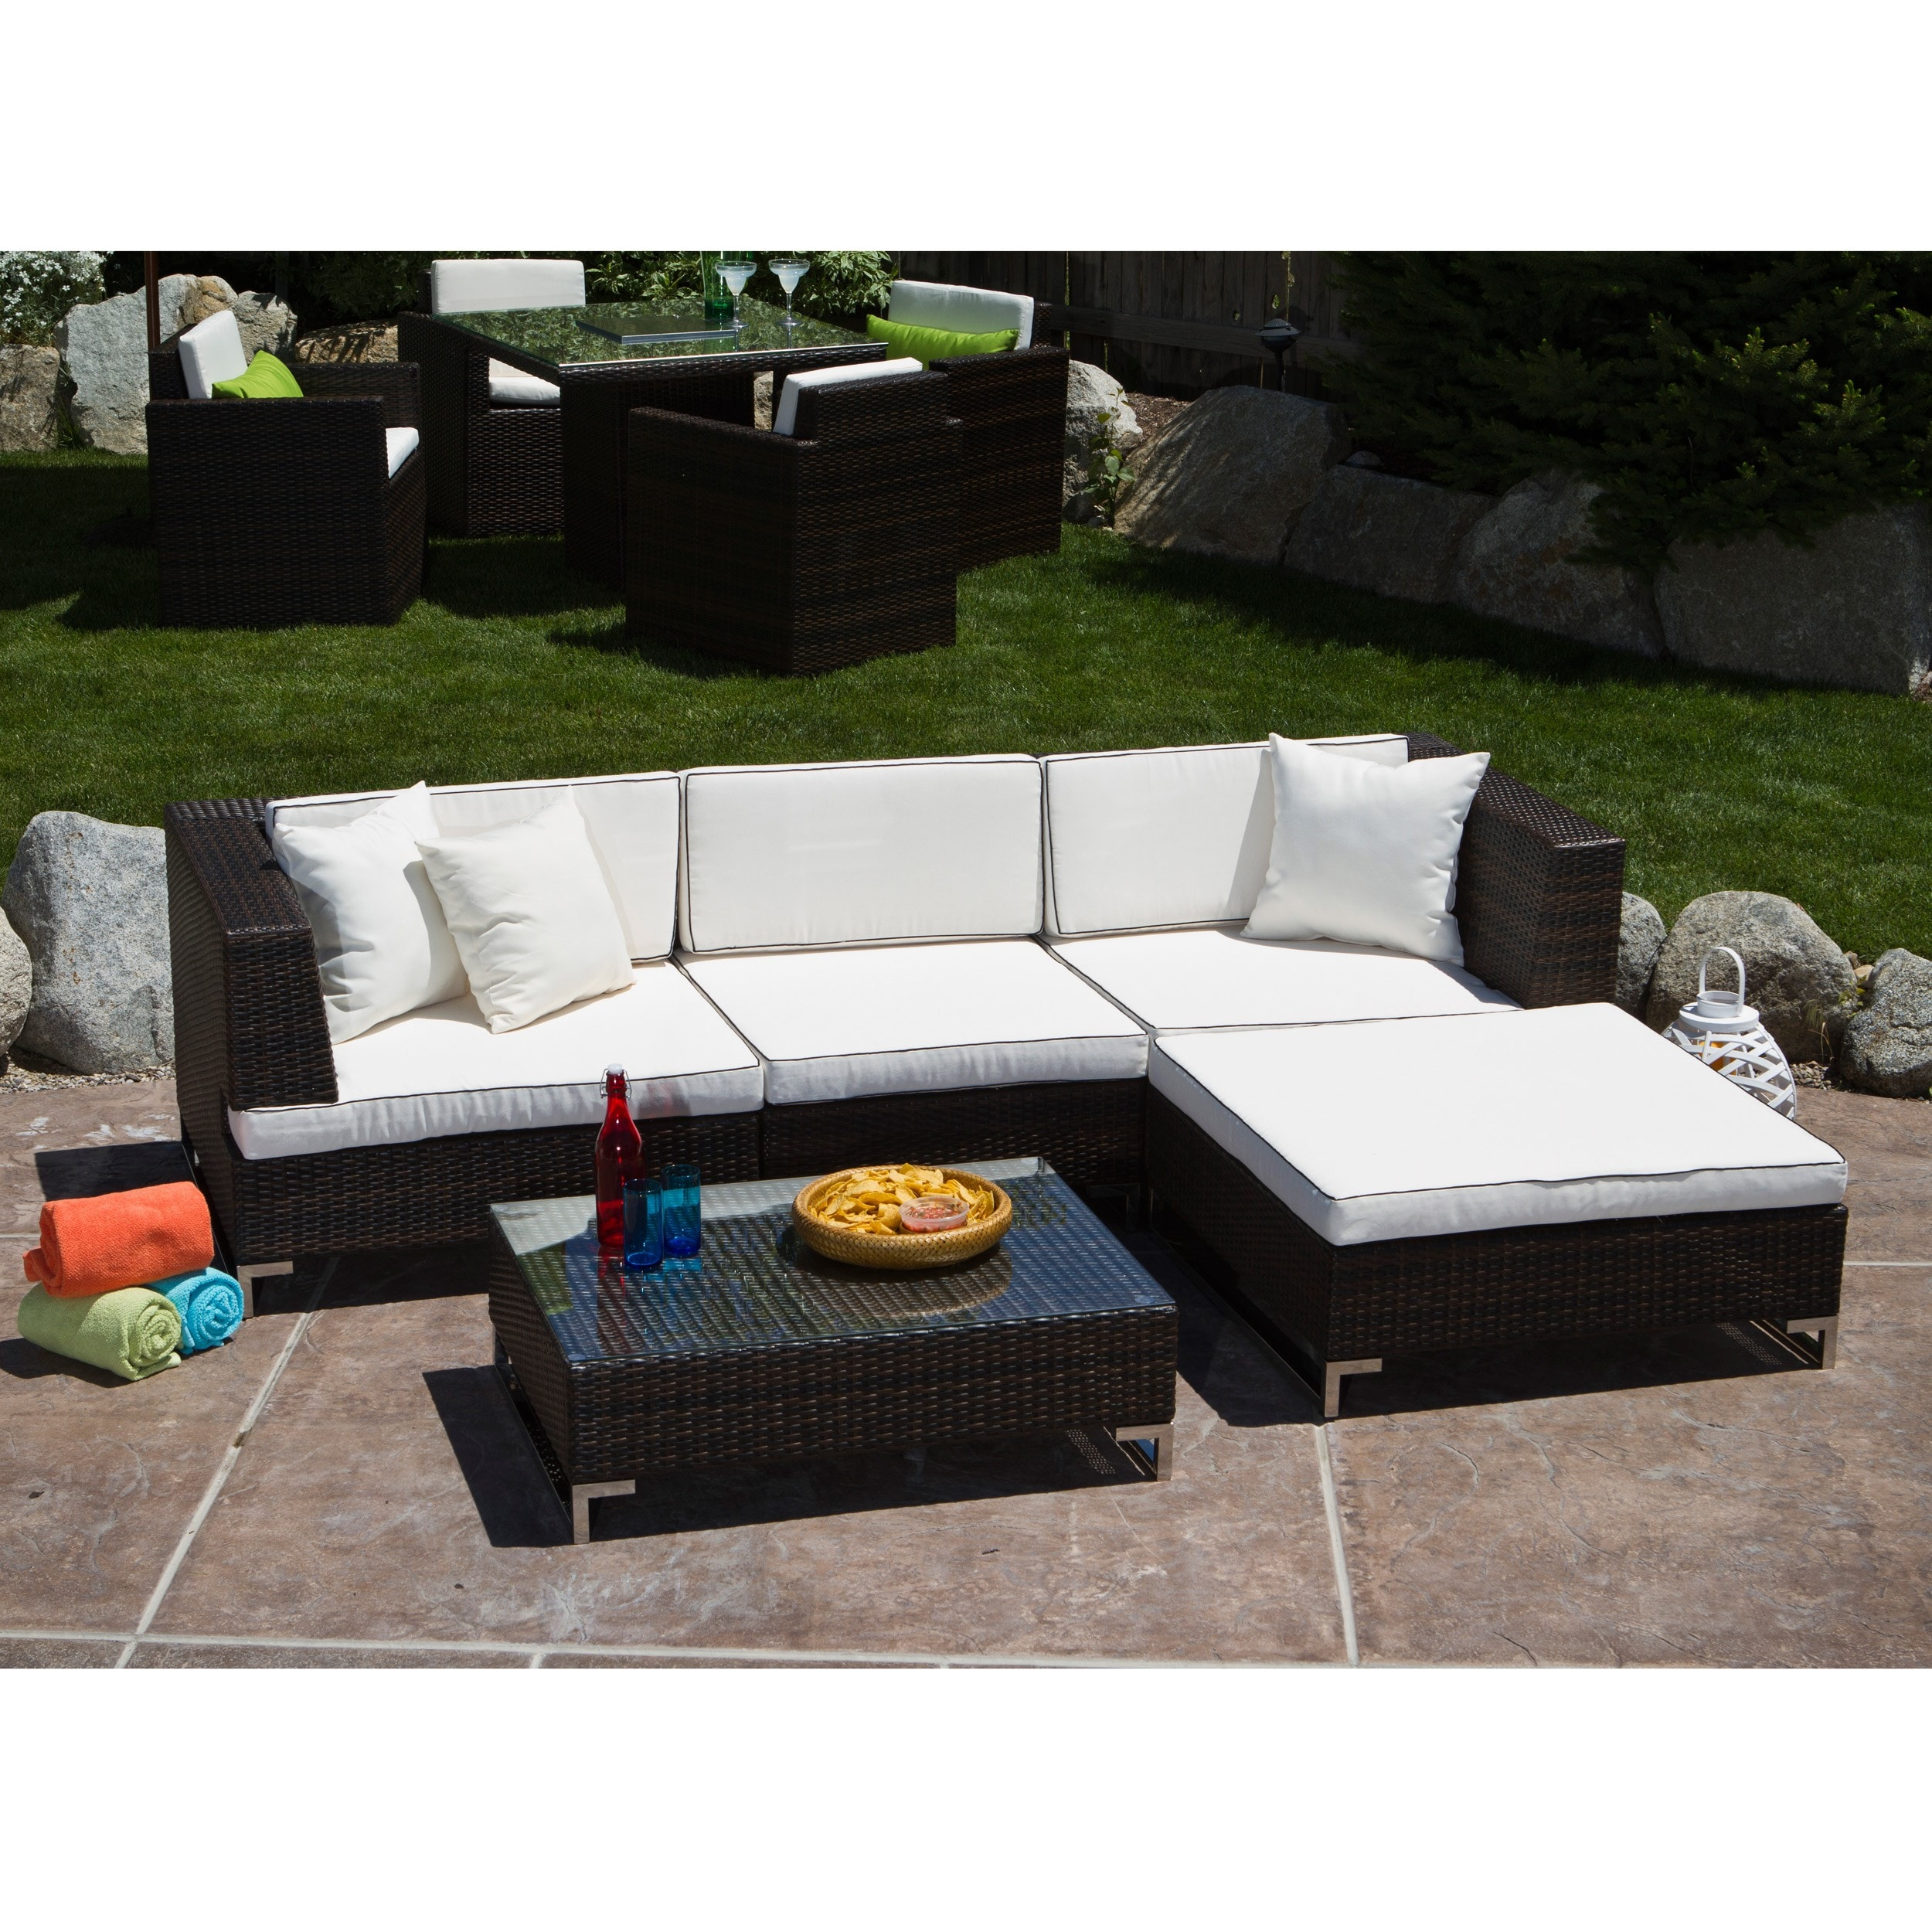 viro sectional wicker graphite miamioutdoorwickersectionalsetpatiofurnitureinvirographite furniture in and miami set patio outdoor blue azure